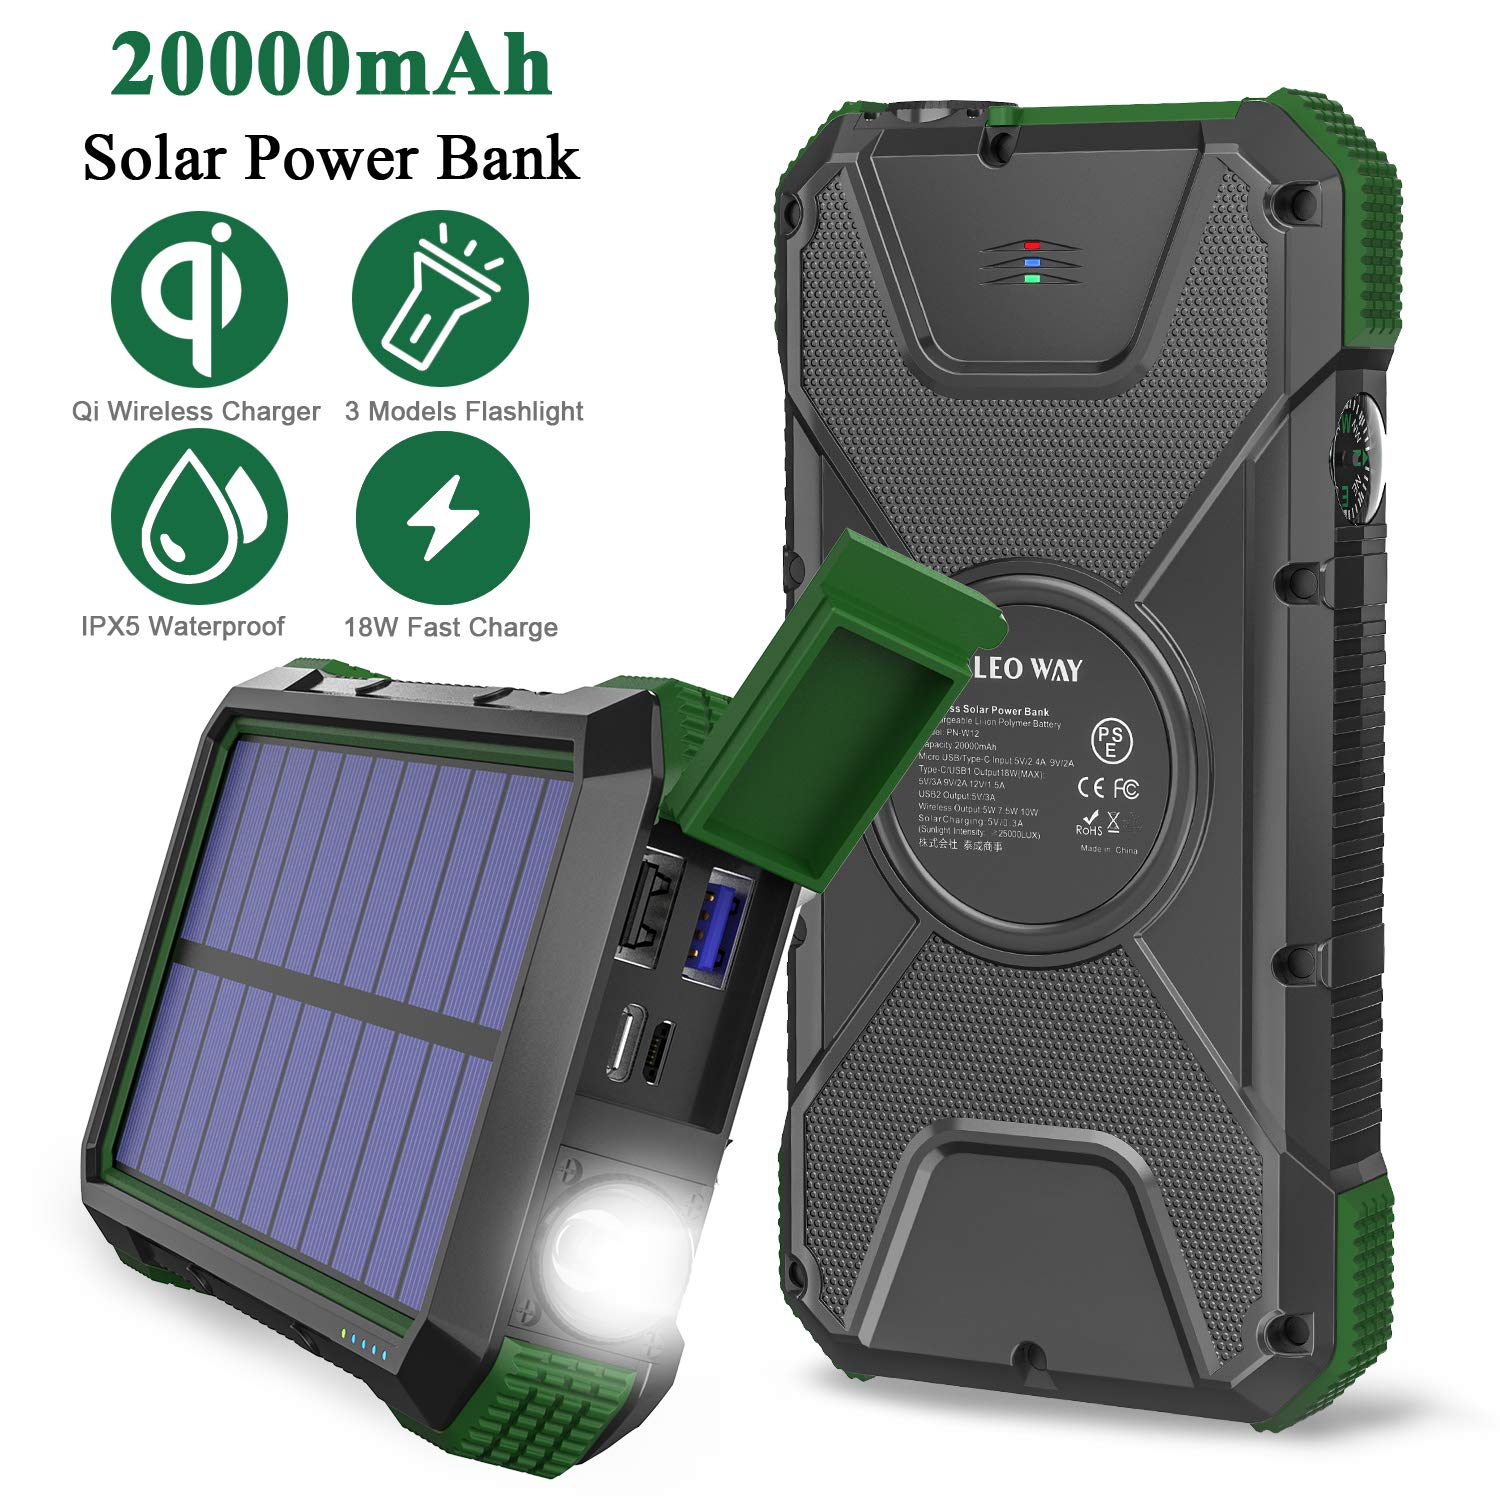 Solar Charger Power Bank 20000mAh, 18W QC3.0 and PD Fast Charging Portable Outdoor Wireless Charger 10W/7.5W/5W with 4 Outputs & Dual Inputs, External Battery IPX5 Waterproof with Flashlight Compass by LEO WAY